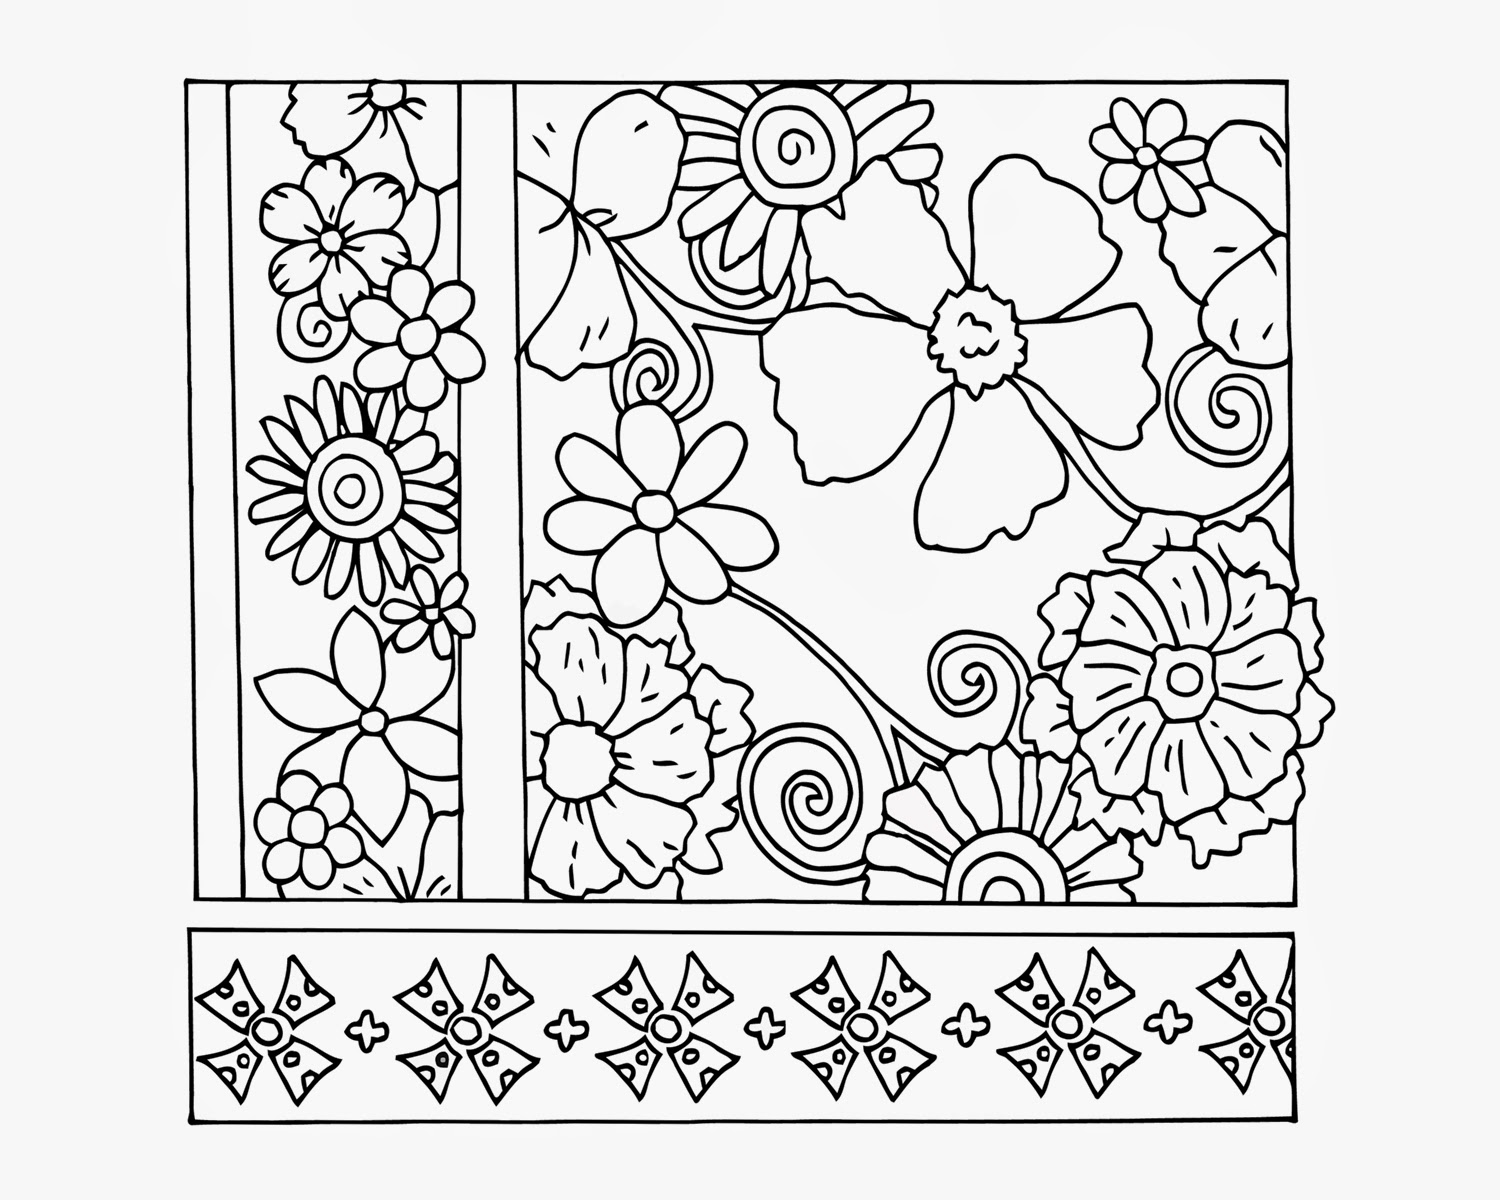 april showers coloring pages - free april showers bring coloring pages